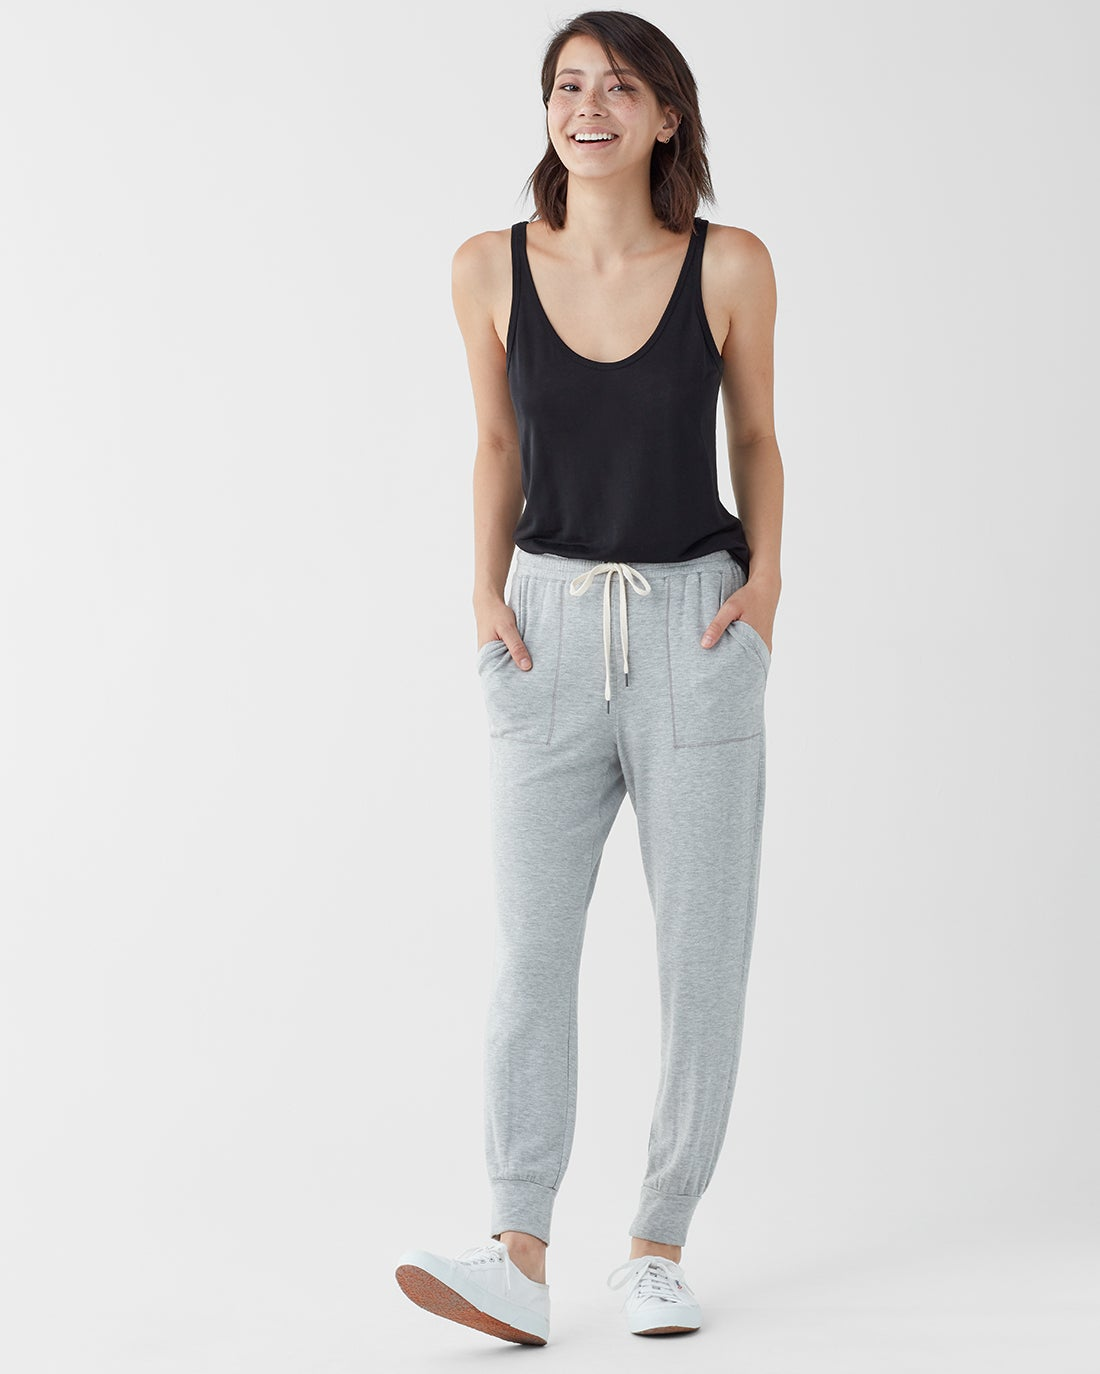 Splendid Women's Super Soft Brushed French Terry Jogger